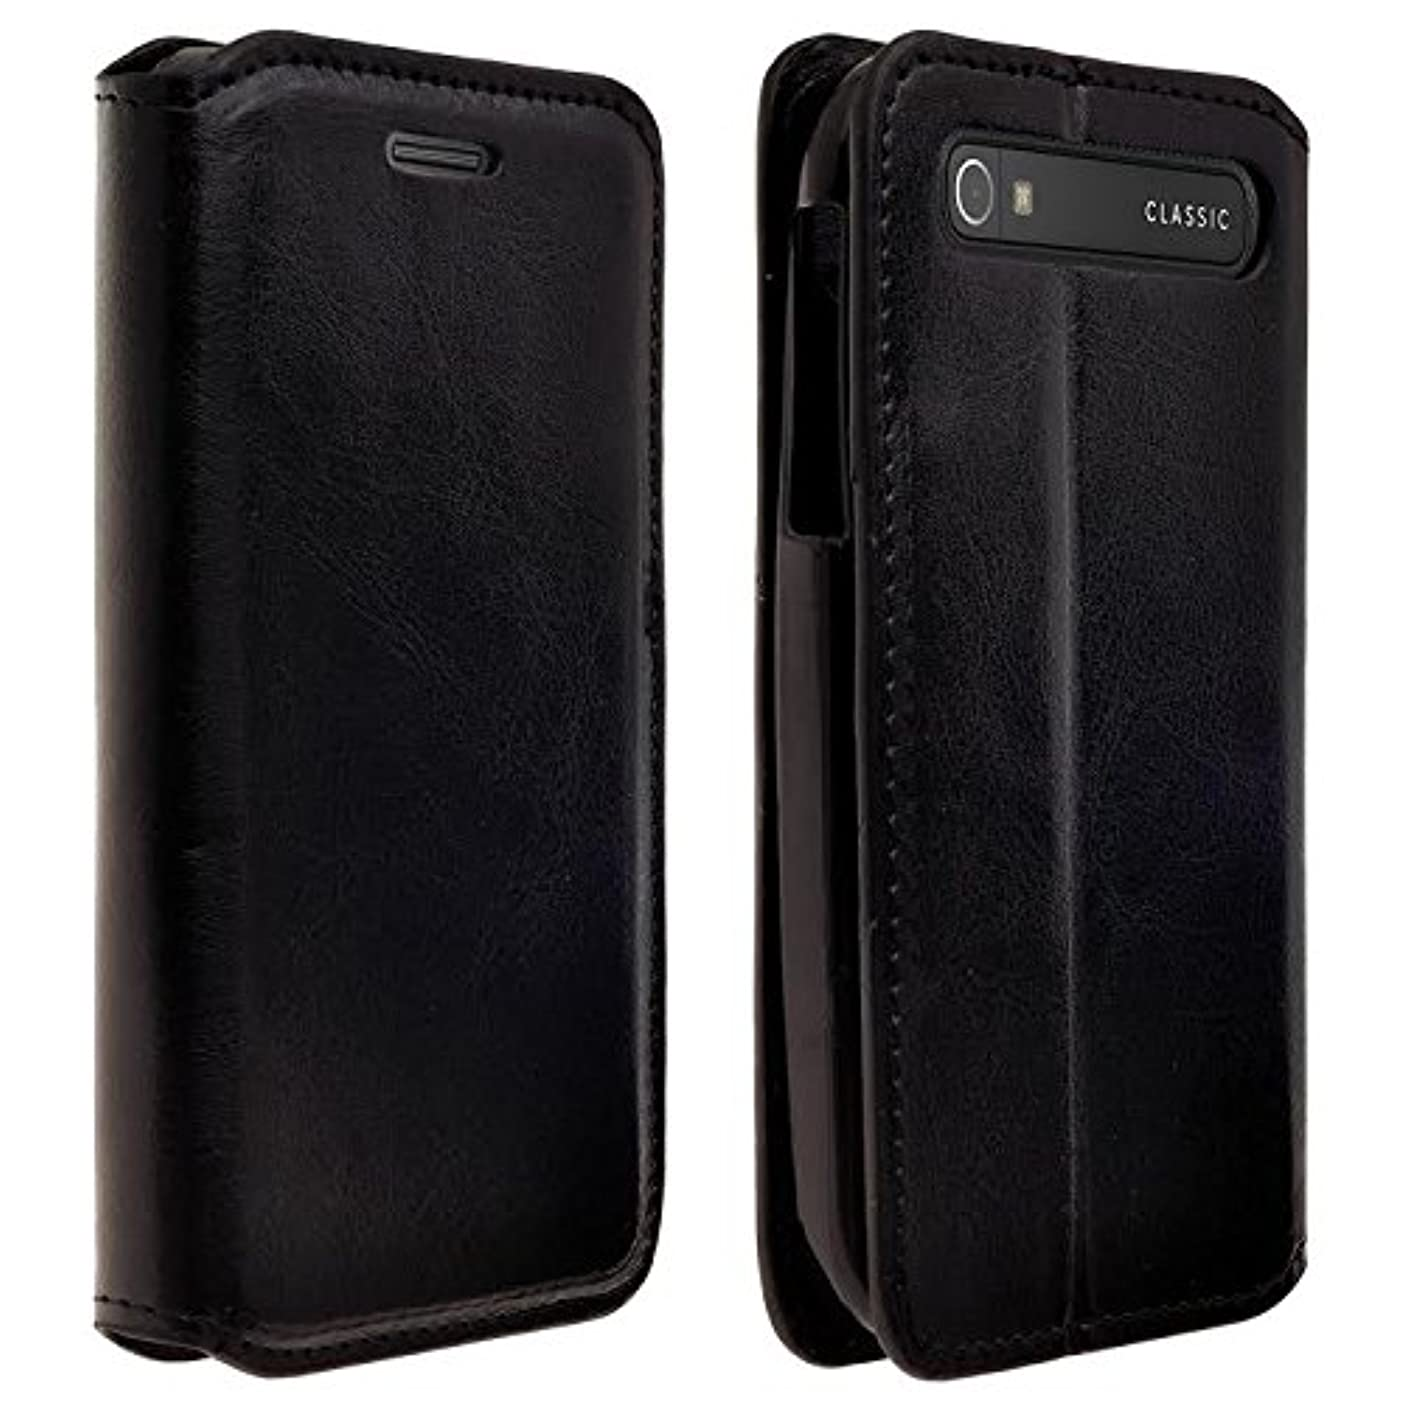 BlackBerry Classic (T-Mobile Case) - Magnetic Leather Folio Flip Book Wallet Pouch Case Cover With Fold Up Kickstand (Black Slim Leather Wallet)